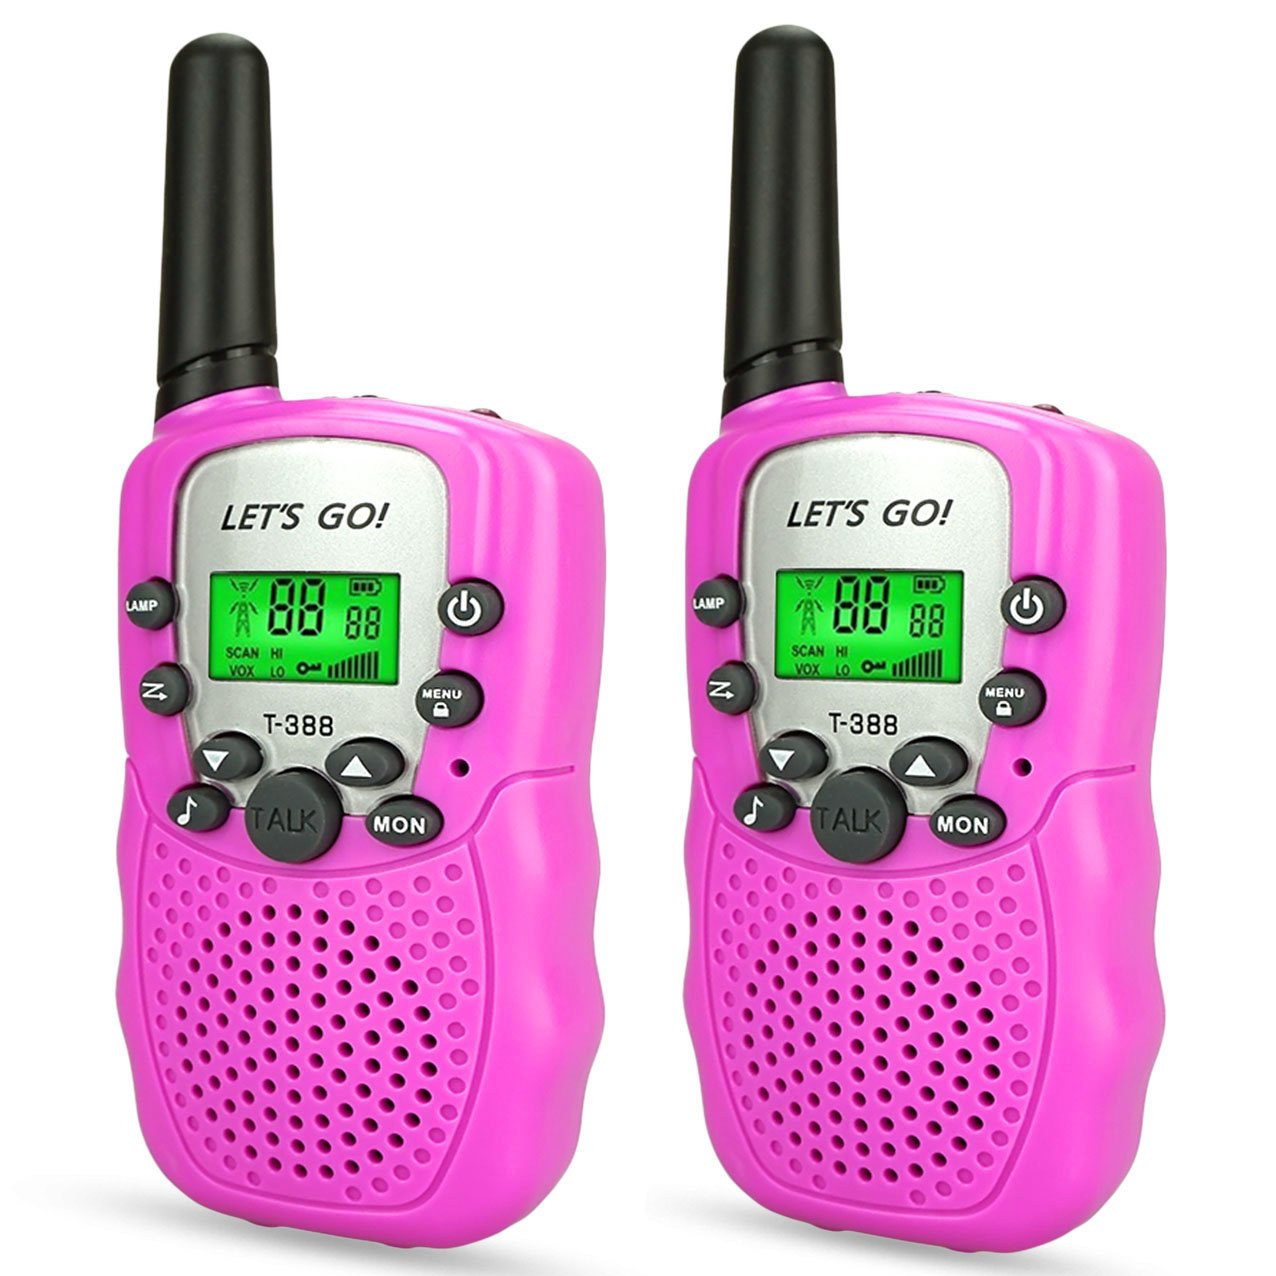 Toys for 3-12 Year Old Girls, DIMY Walkies Talkies for Kids Girls Toys Age 3-12 Year Old Girl Outdoor Toys for Kids Pink DJ06